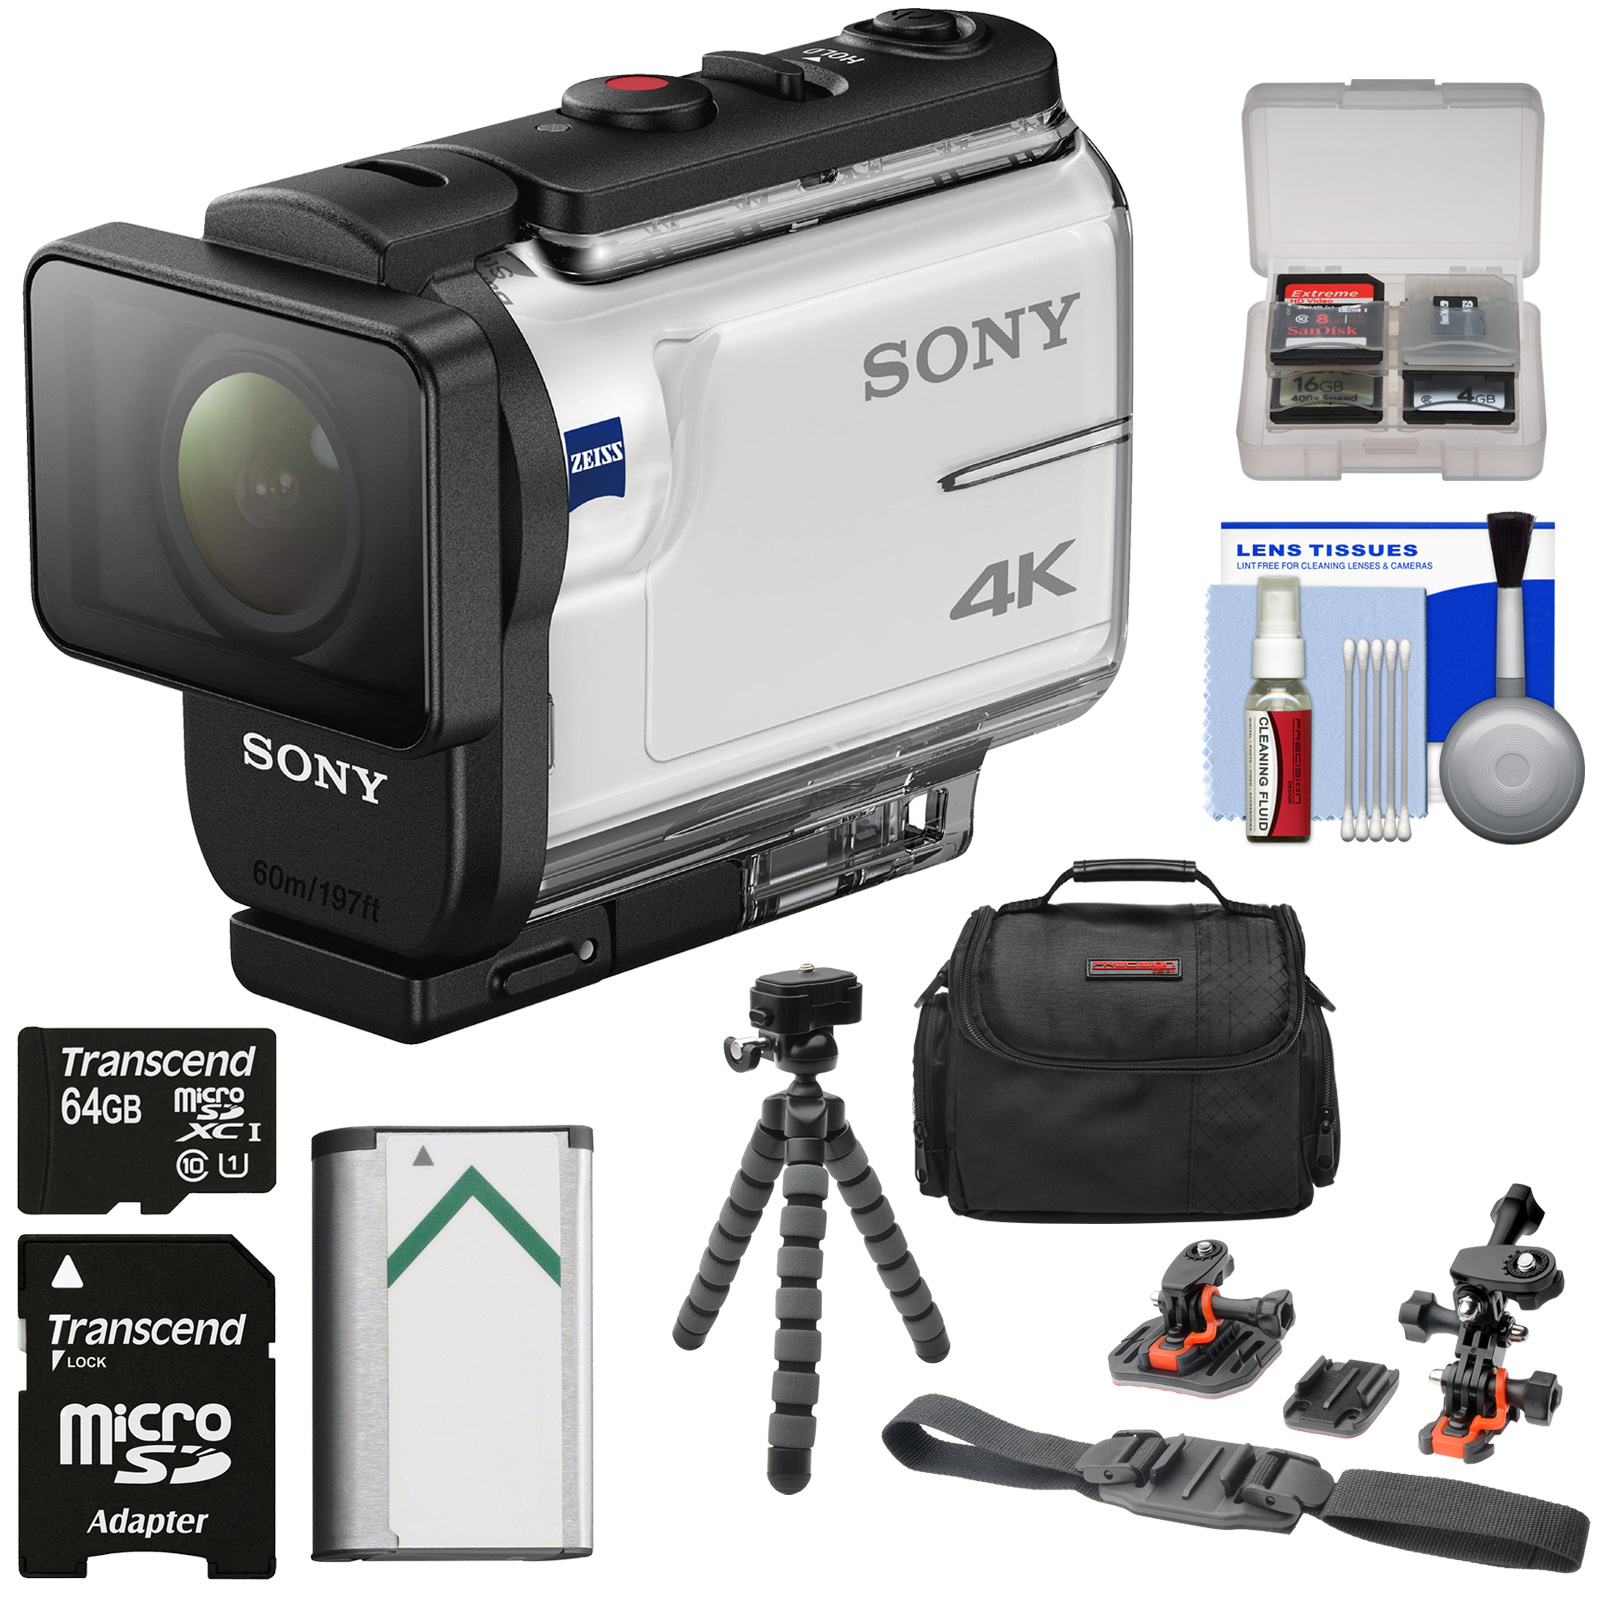 Sony Action Cam FDR-X3000 Wi-Fi GPS 4K HD Video Camera Camcorder with Flat Surface & Helmet Mounts + 64GB Card + Battery + Case + Flex Tripod + Kit